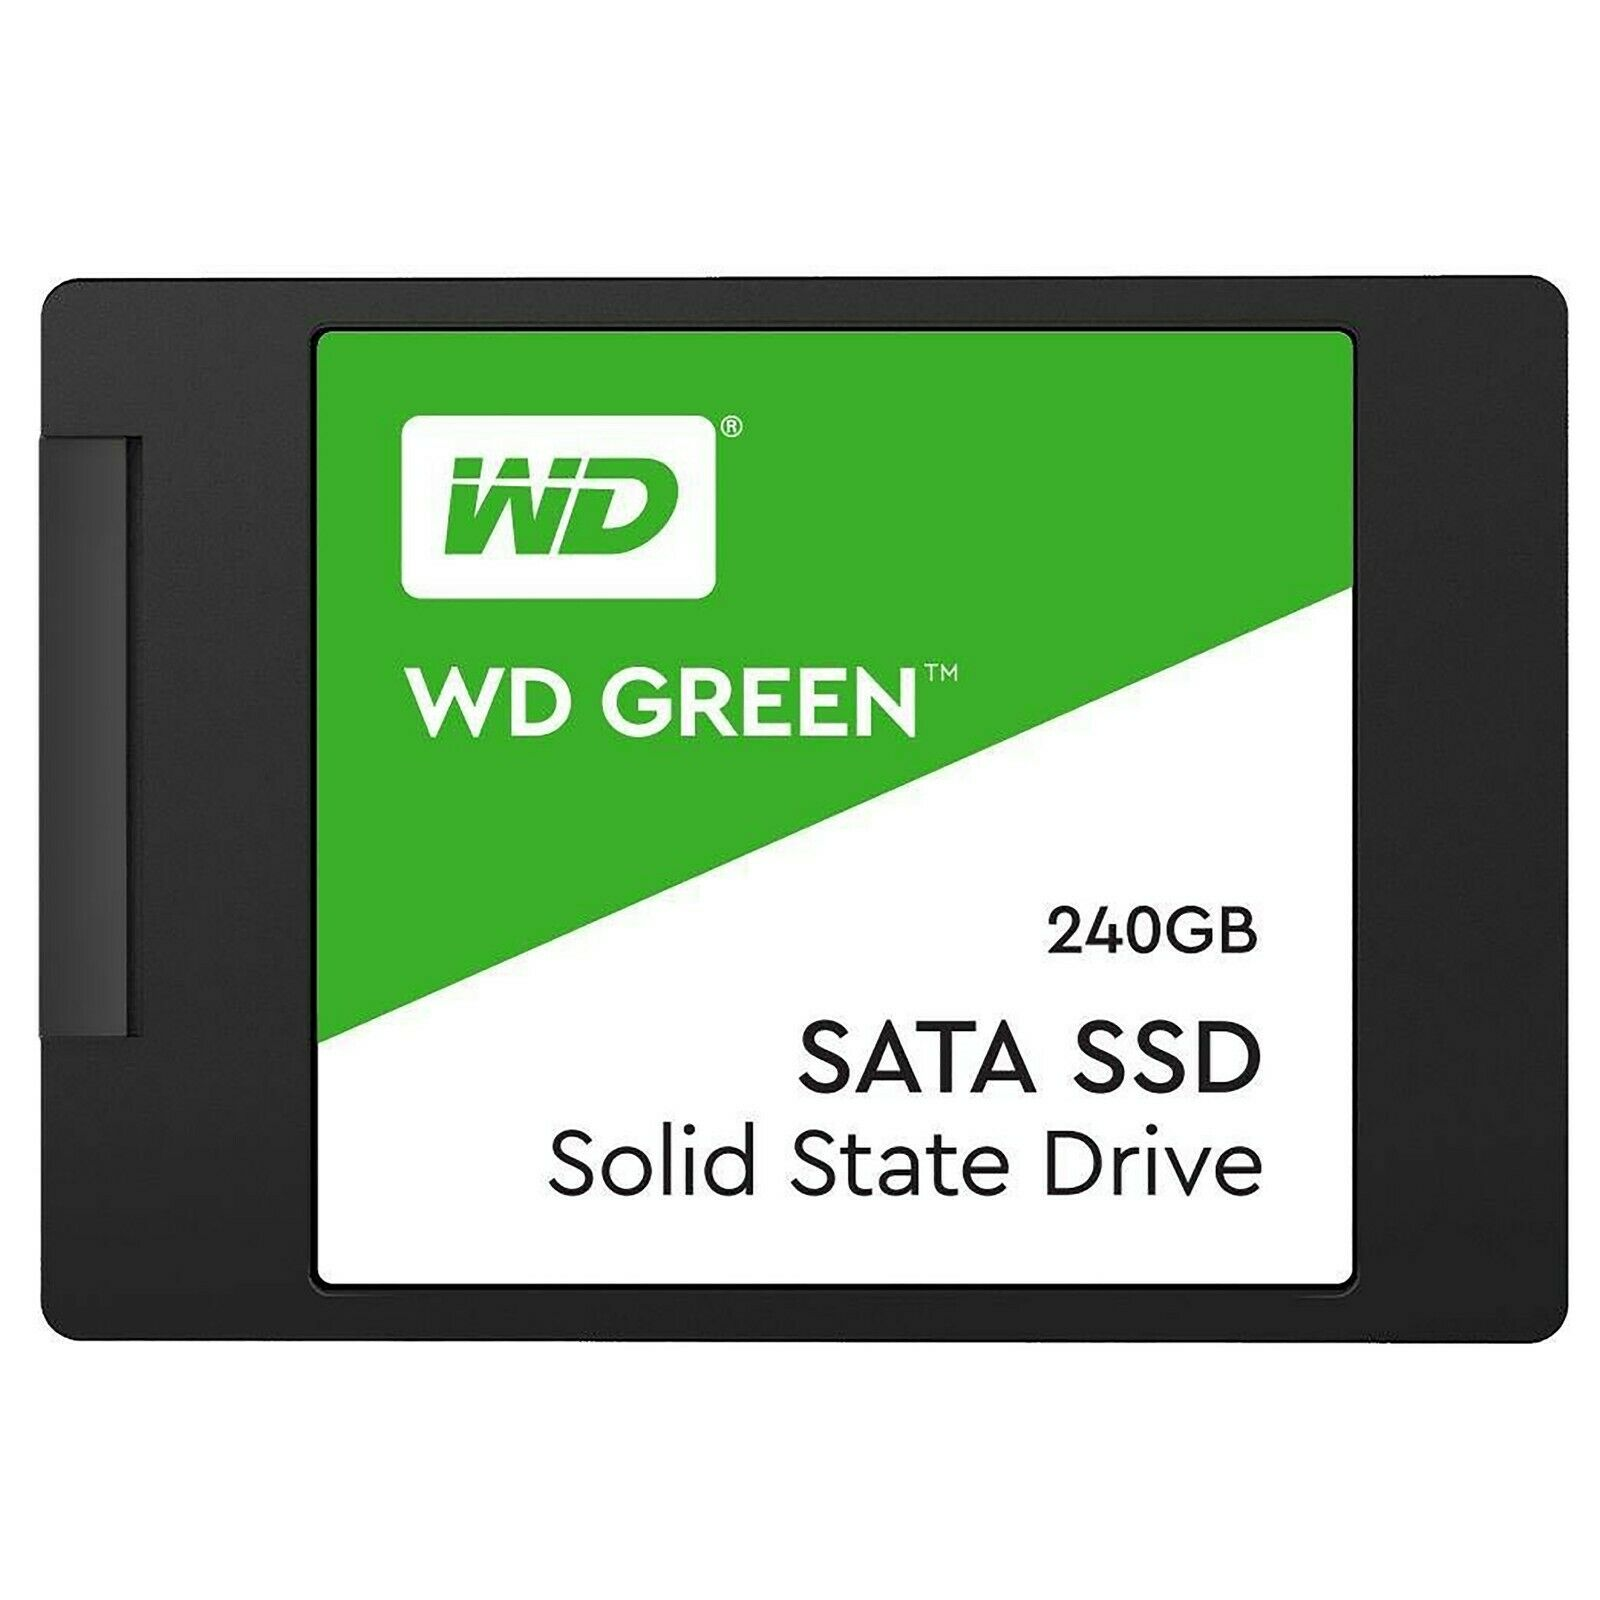 Western Digital SSD 240GB SATA III 3D NAND Internal Solid State Drive SSD 240 GB. Buy it now for 38.95